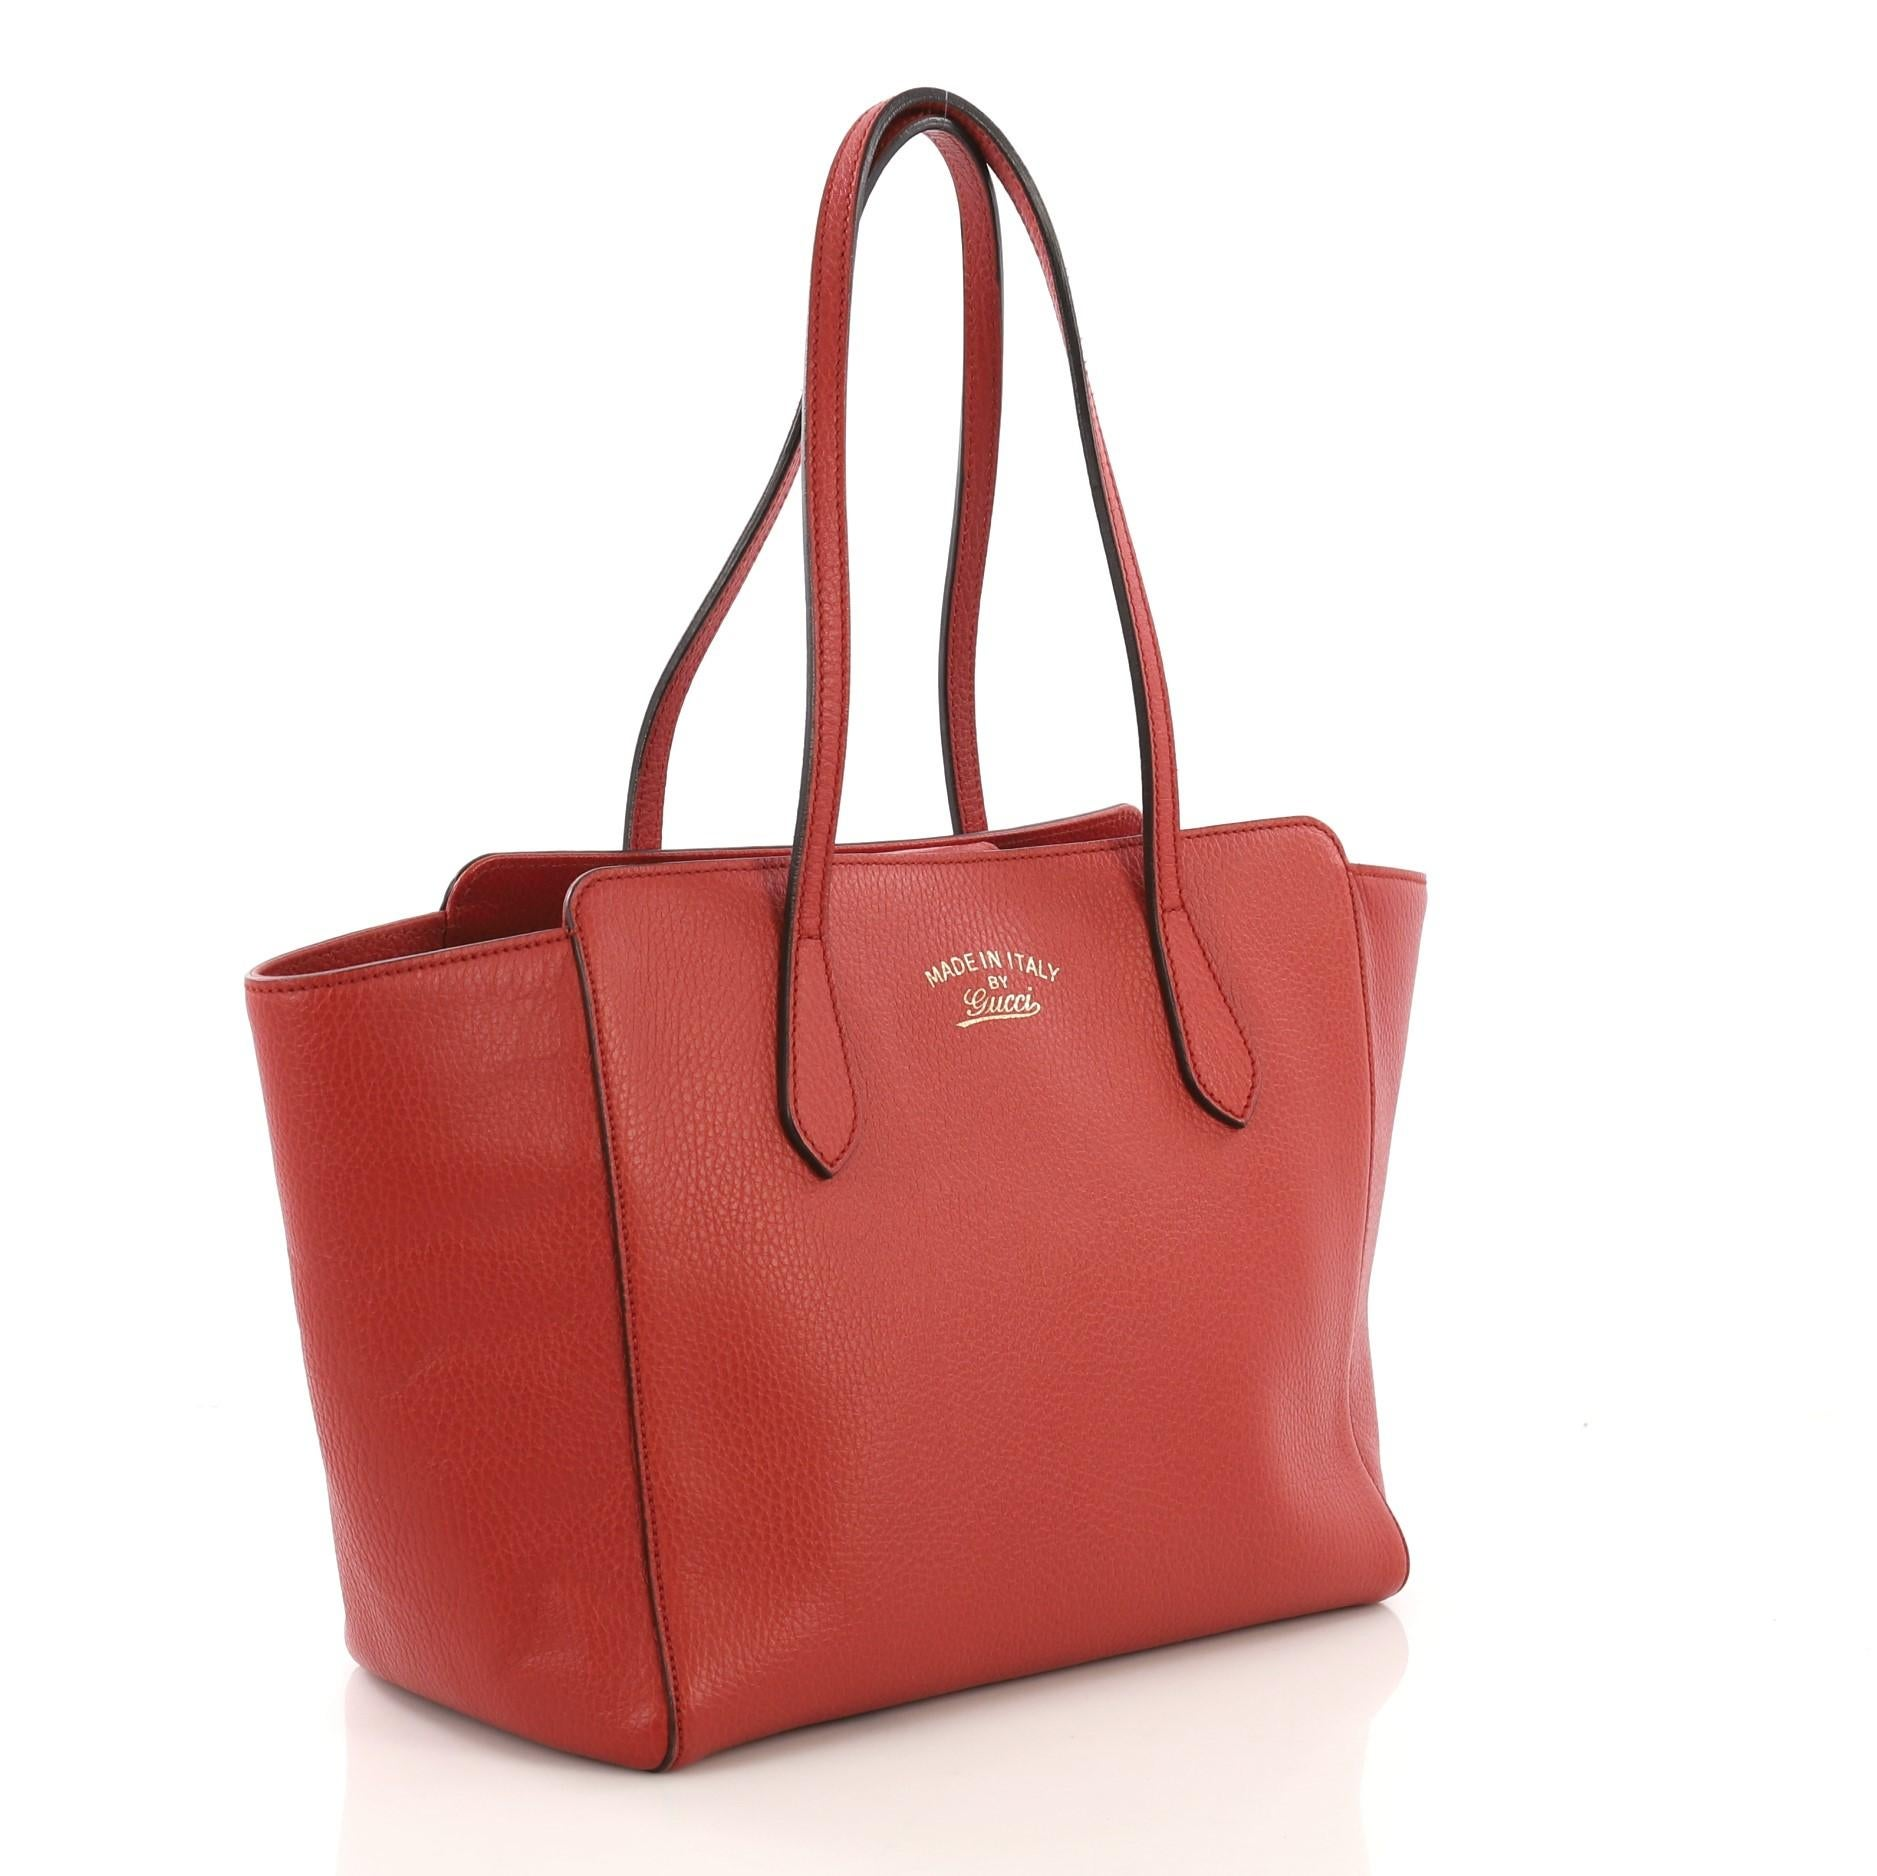 4d6a48ec33aa54 Gucci Swing Tote Leather Small, crafted in red leather at 1stdibs